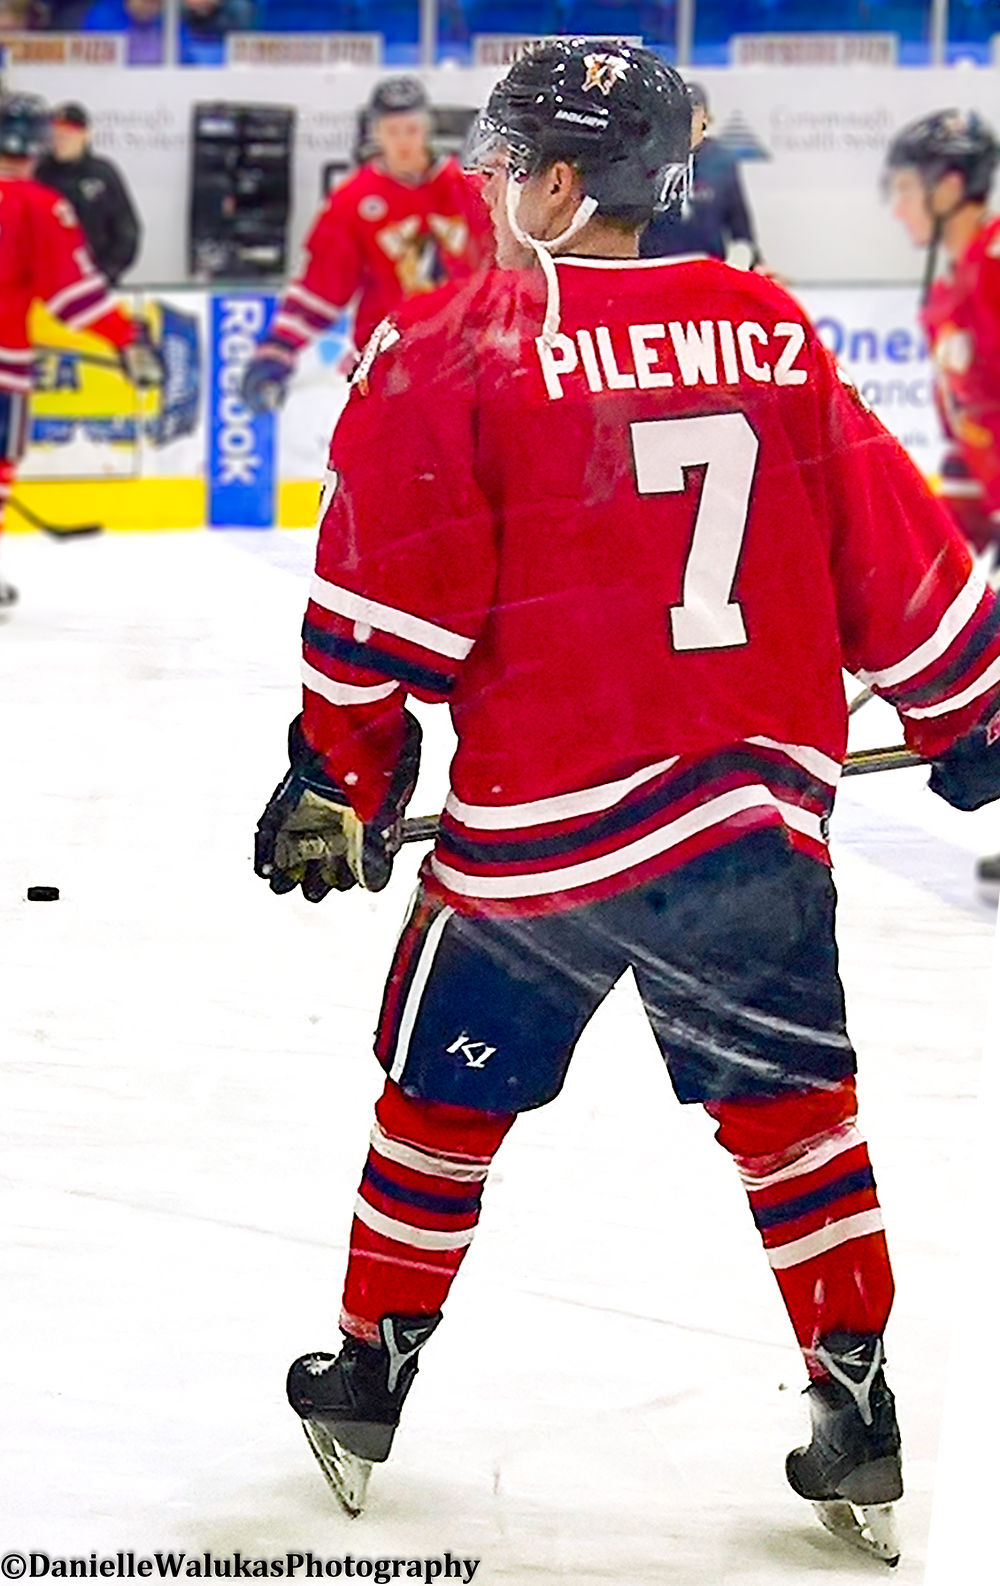 ADAM PILEWICZ warming up for the Johnstown Tomahawks